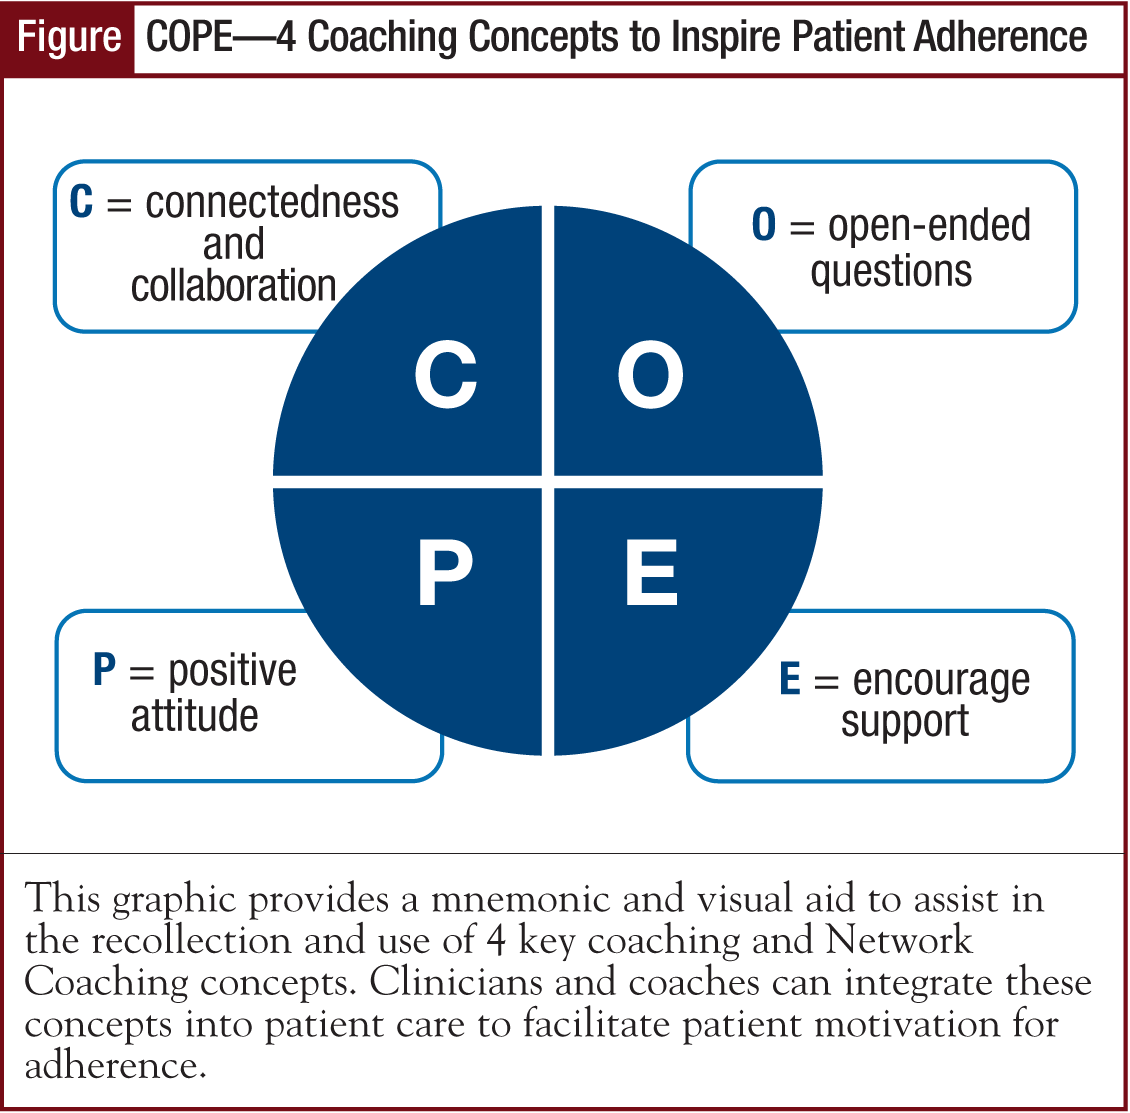 Figure - COPE—4 Coaching Concepts to Inspire Patient Adherence